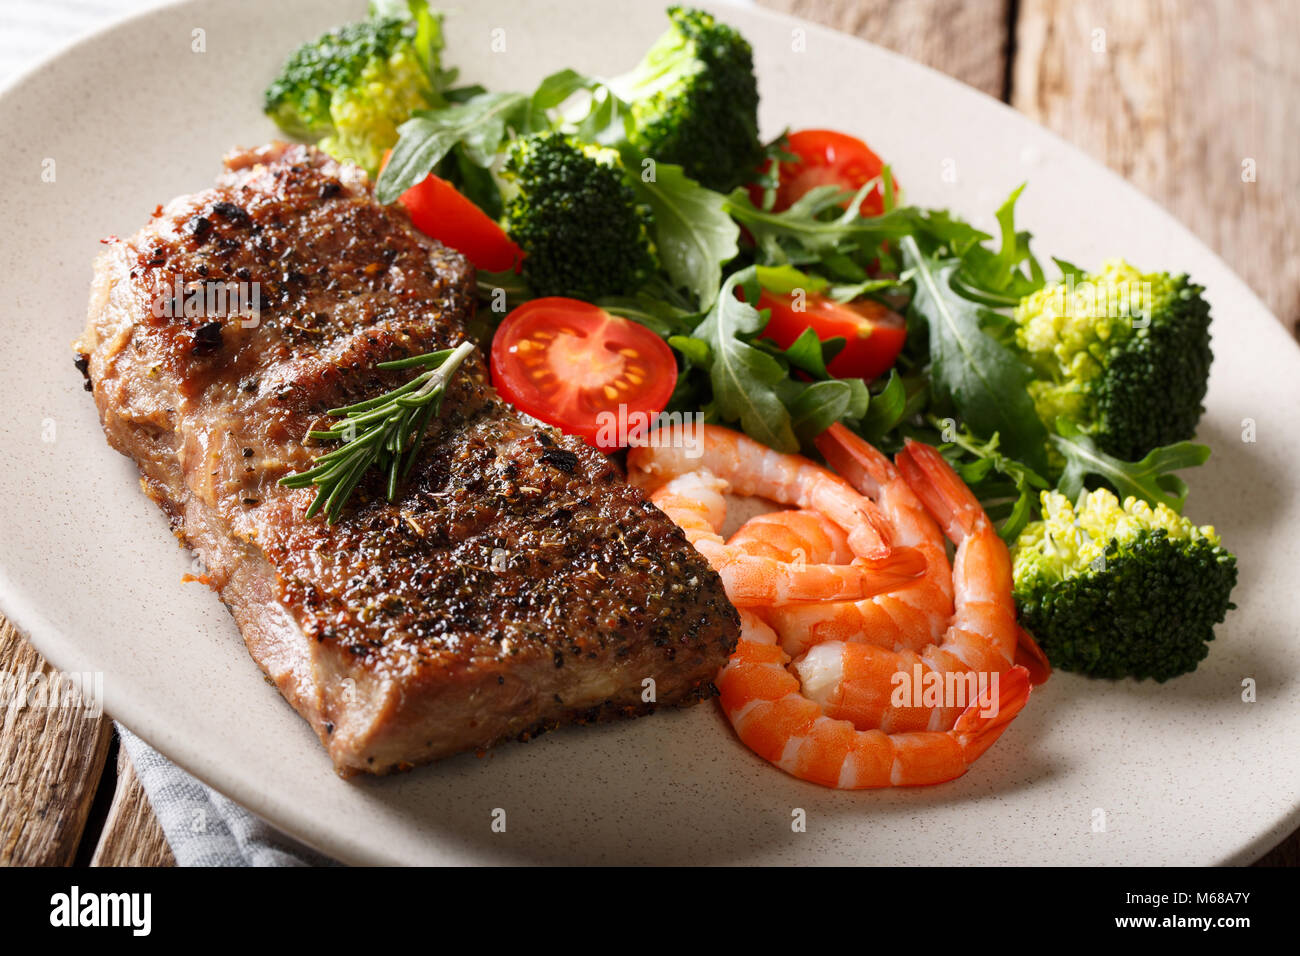 beef steak and broccoli stockfotos beef steak and broccoli bilder alamy. Black Bedroom Furniture Sets. Home Design Ideas